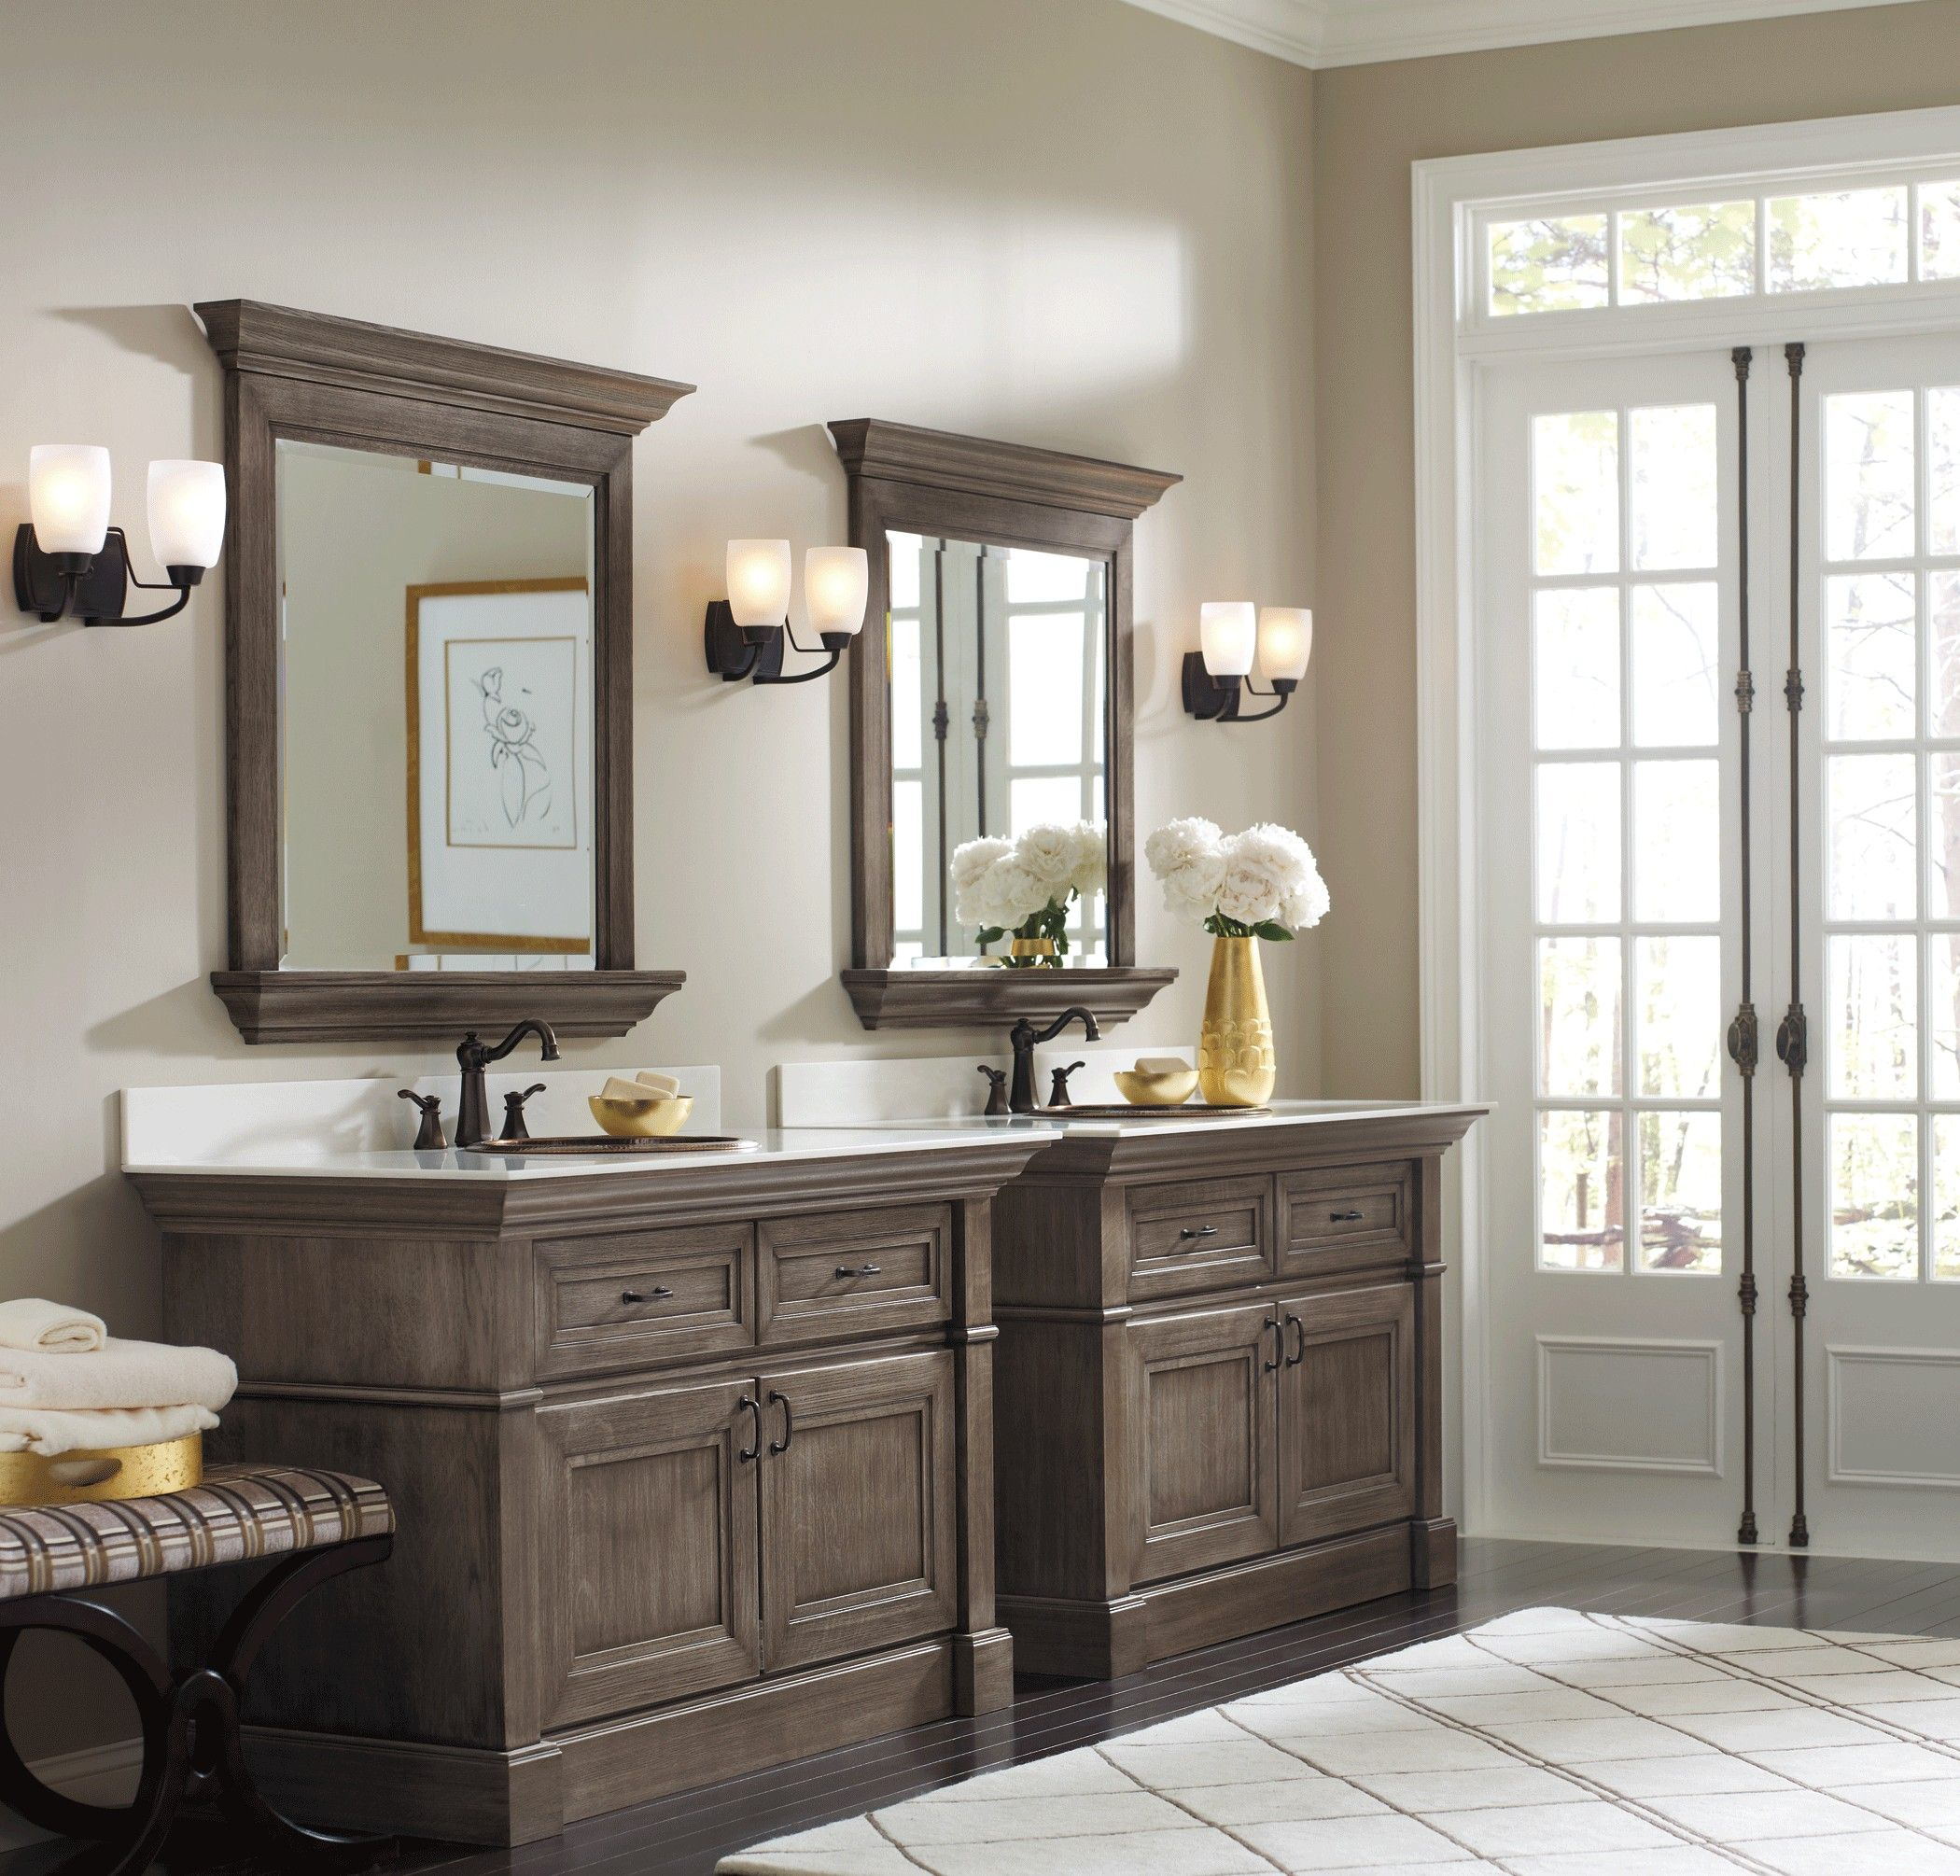 Bathroom Furniture Distressed Walnut Wood Vanity Cabinet With Doble Bronze Undermount Sink Combined Wit Gray Stained Cabinets Staining Cabinets Omega Cabinetry